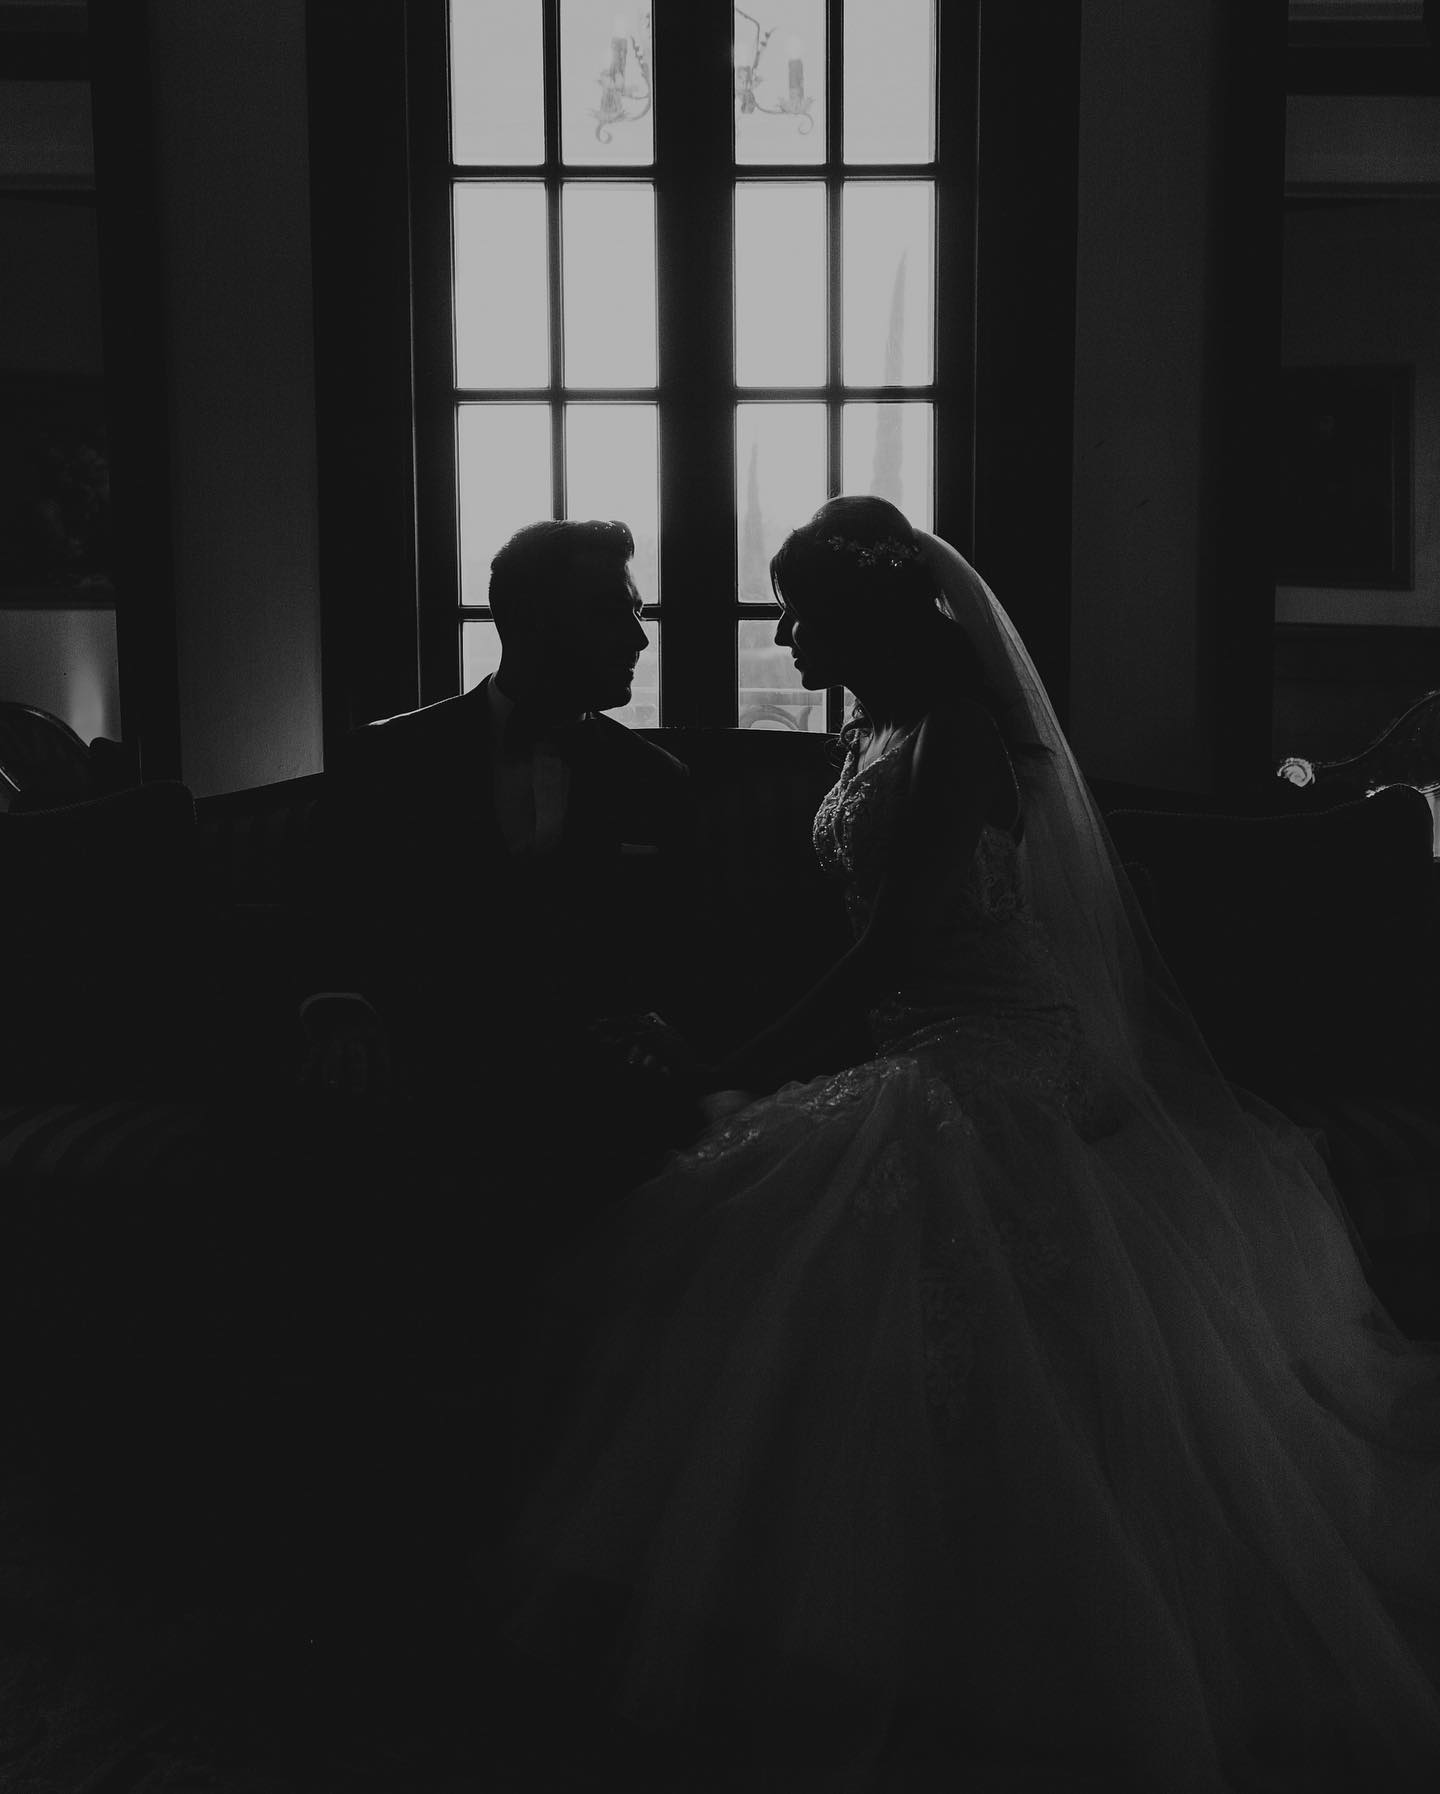 Black and white silhouette of a couple sitting on a couch facing each other